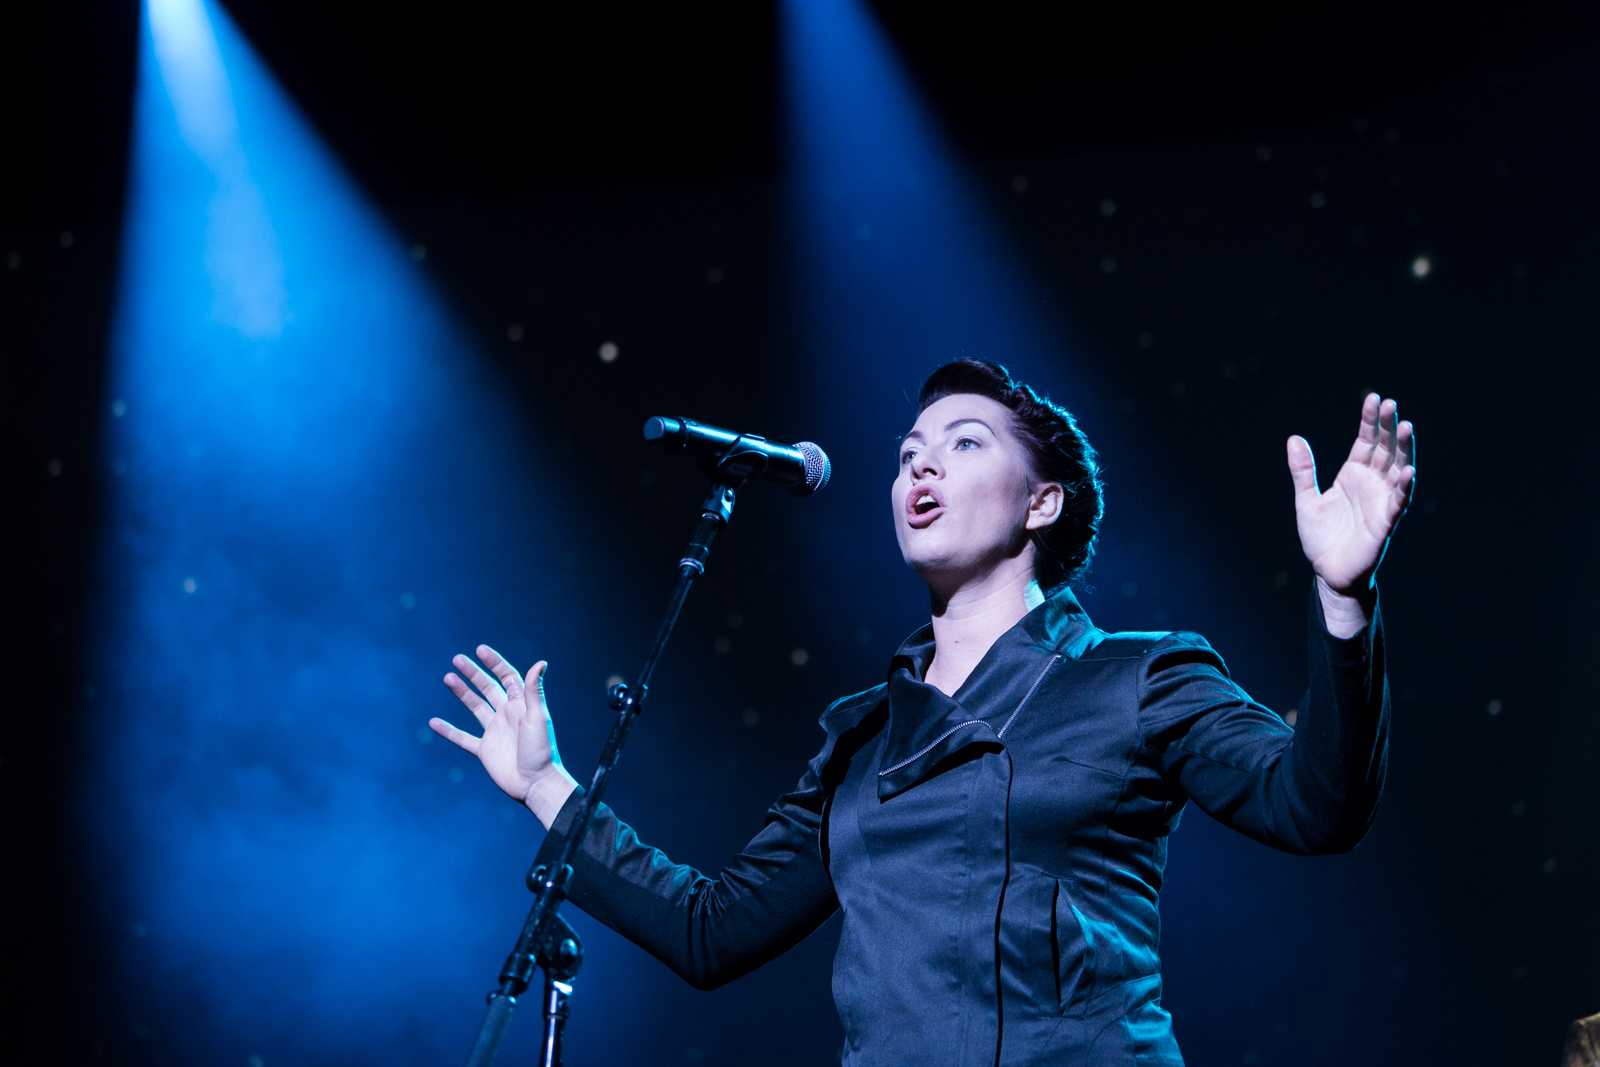 Amanda Palmer performs at TED2016 - Dream, February 15-19, 2016, Vancouver Convention Center, Vancouver, Canada. Photo: Bret Hartman / TED